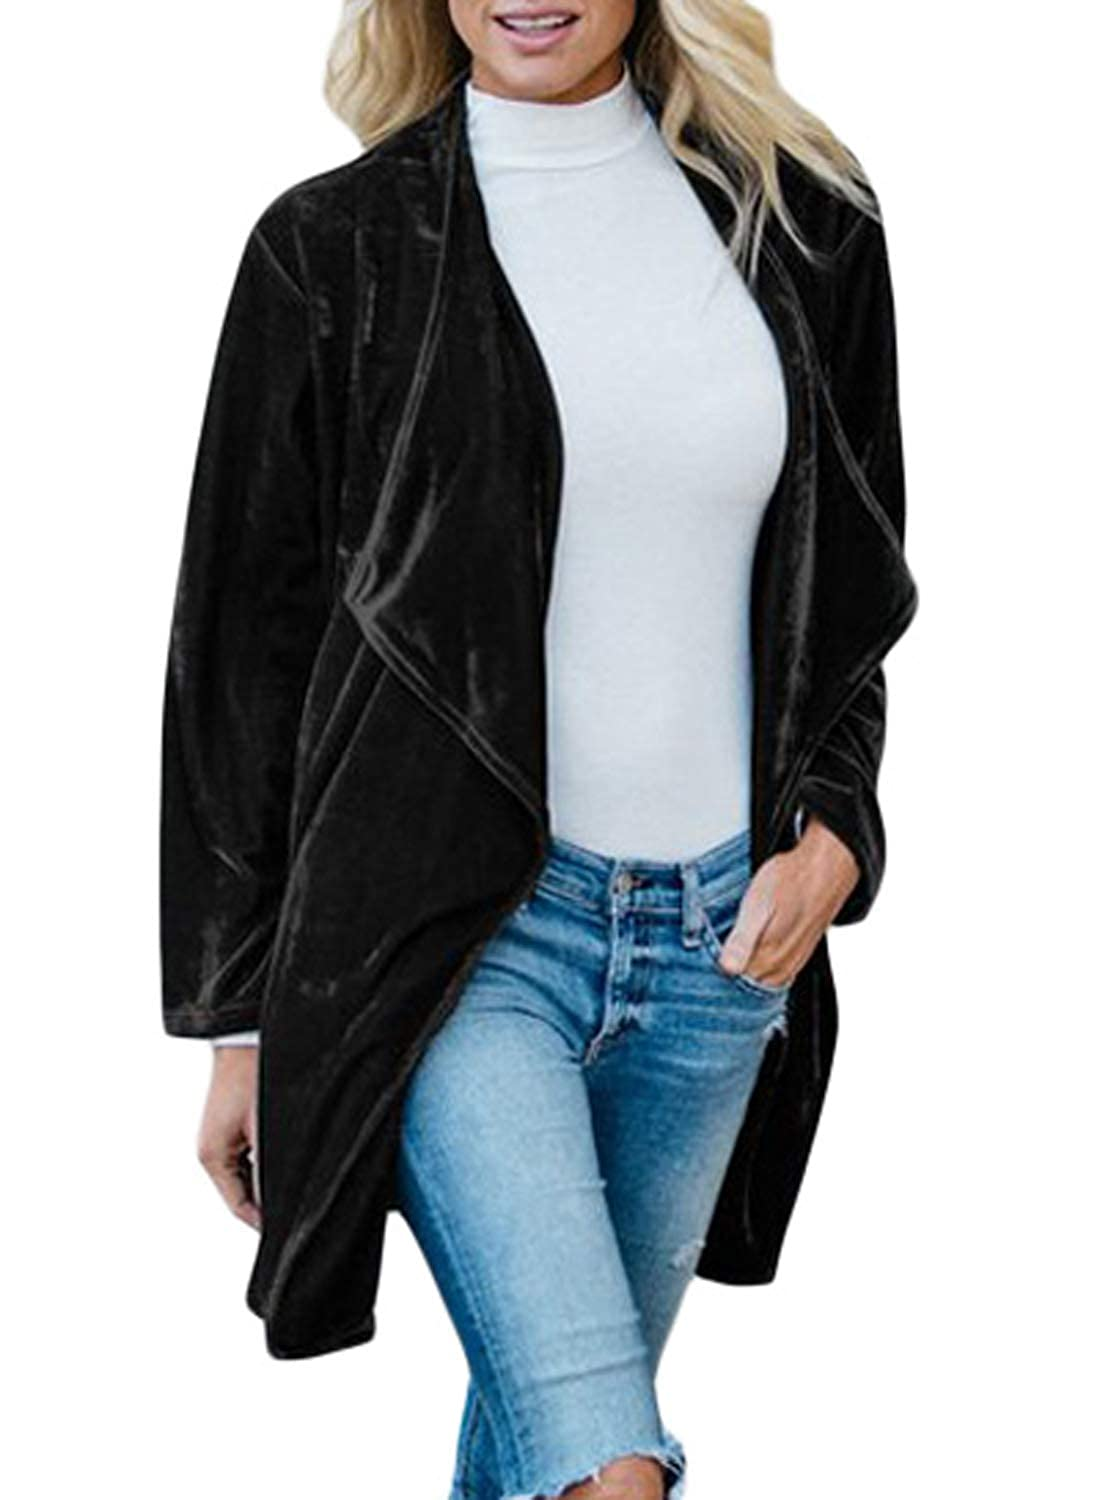 Dearlove Womens Velvet Lapel Draped Open Front Cardigan Pocket Jackets